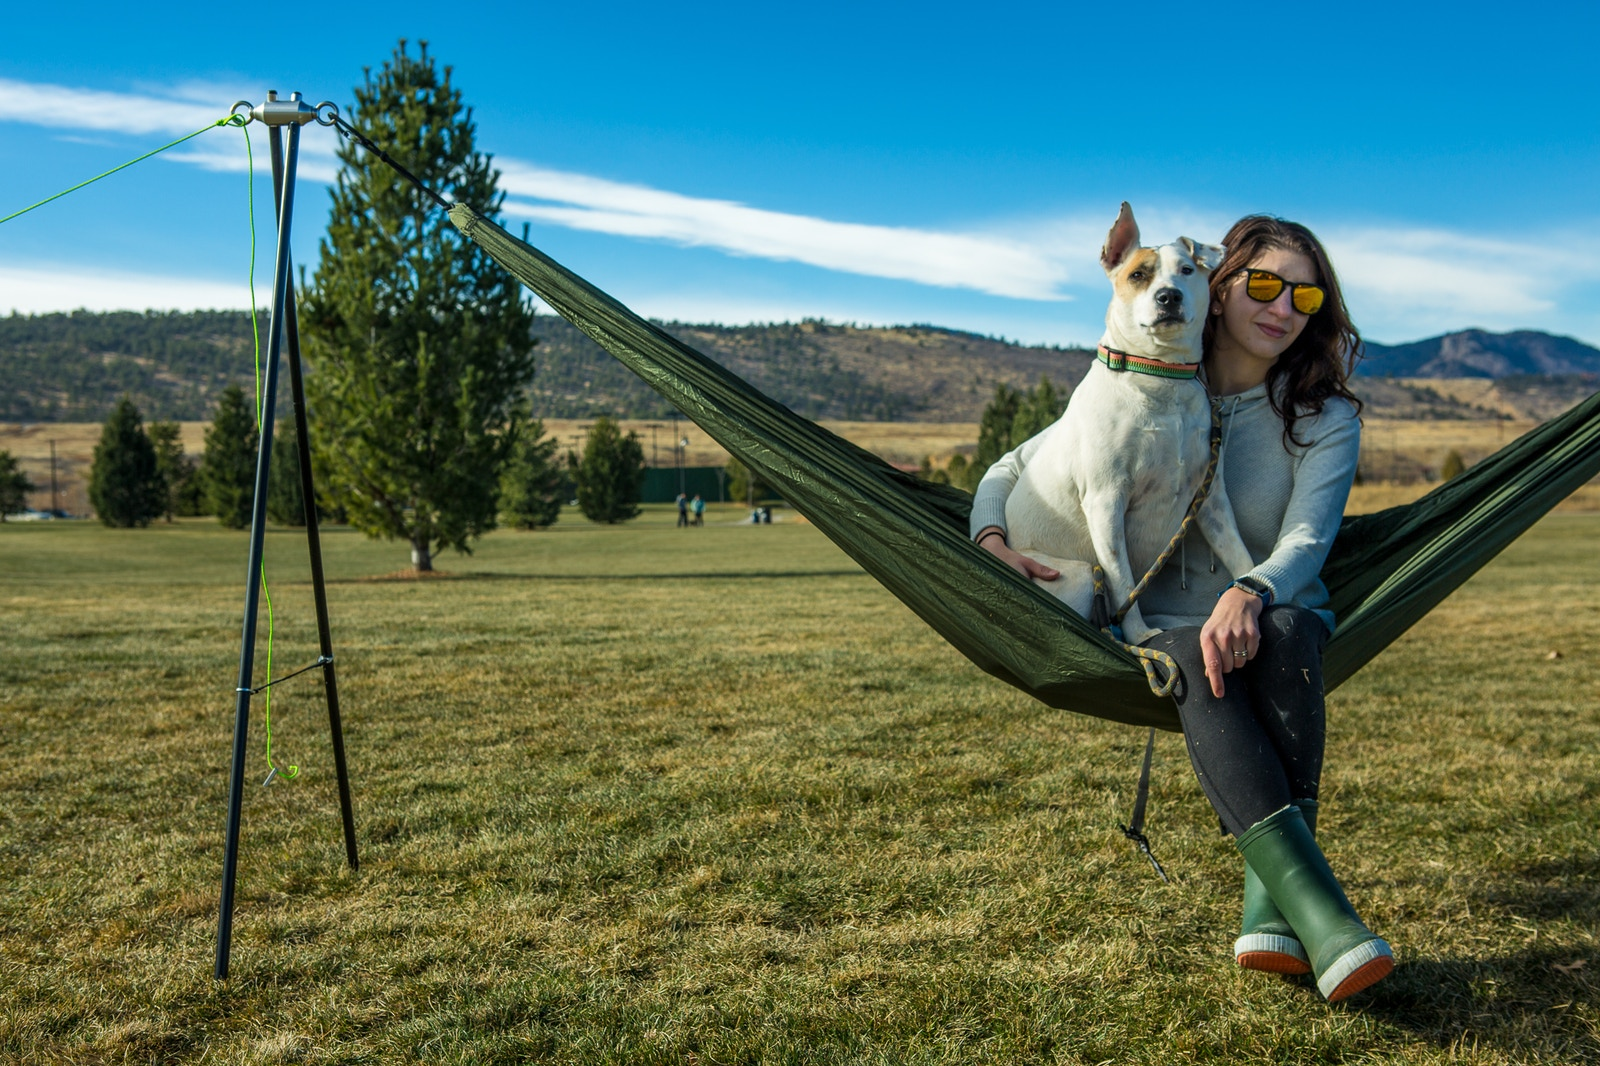 YOBO Hammock Stand - The World's Lightest & Most Portable